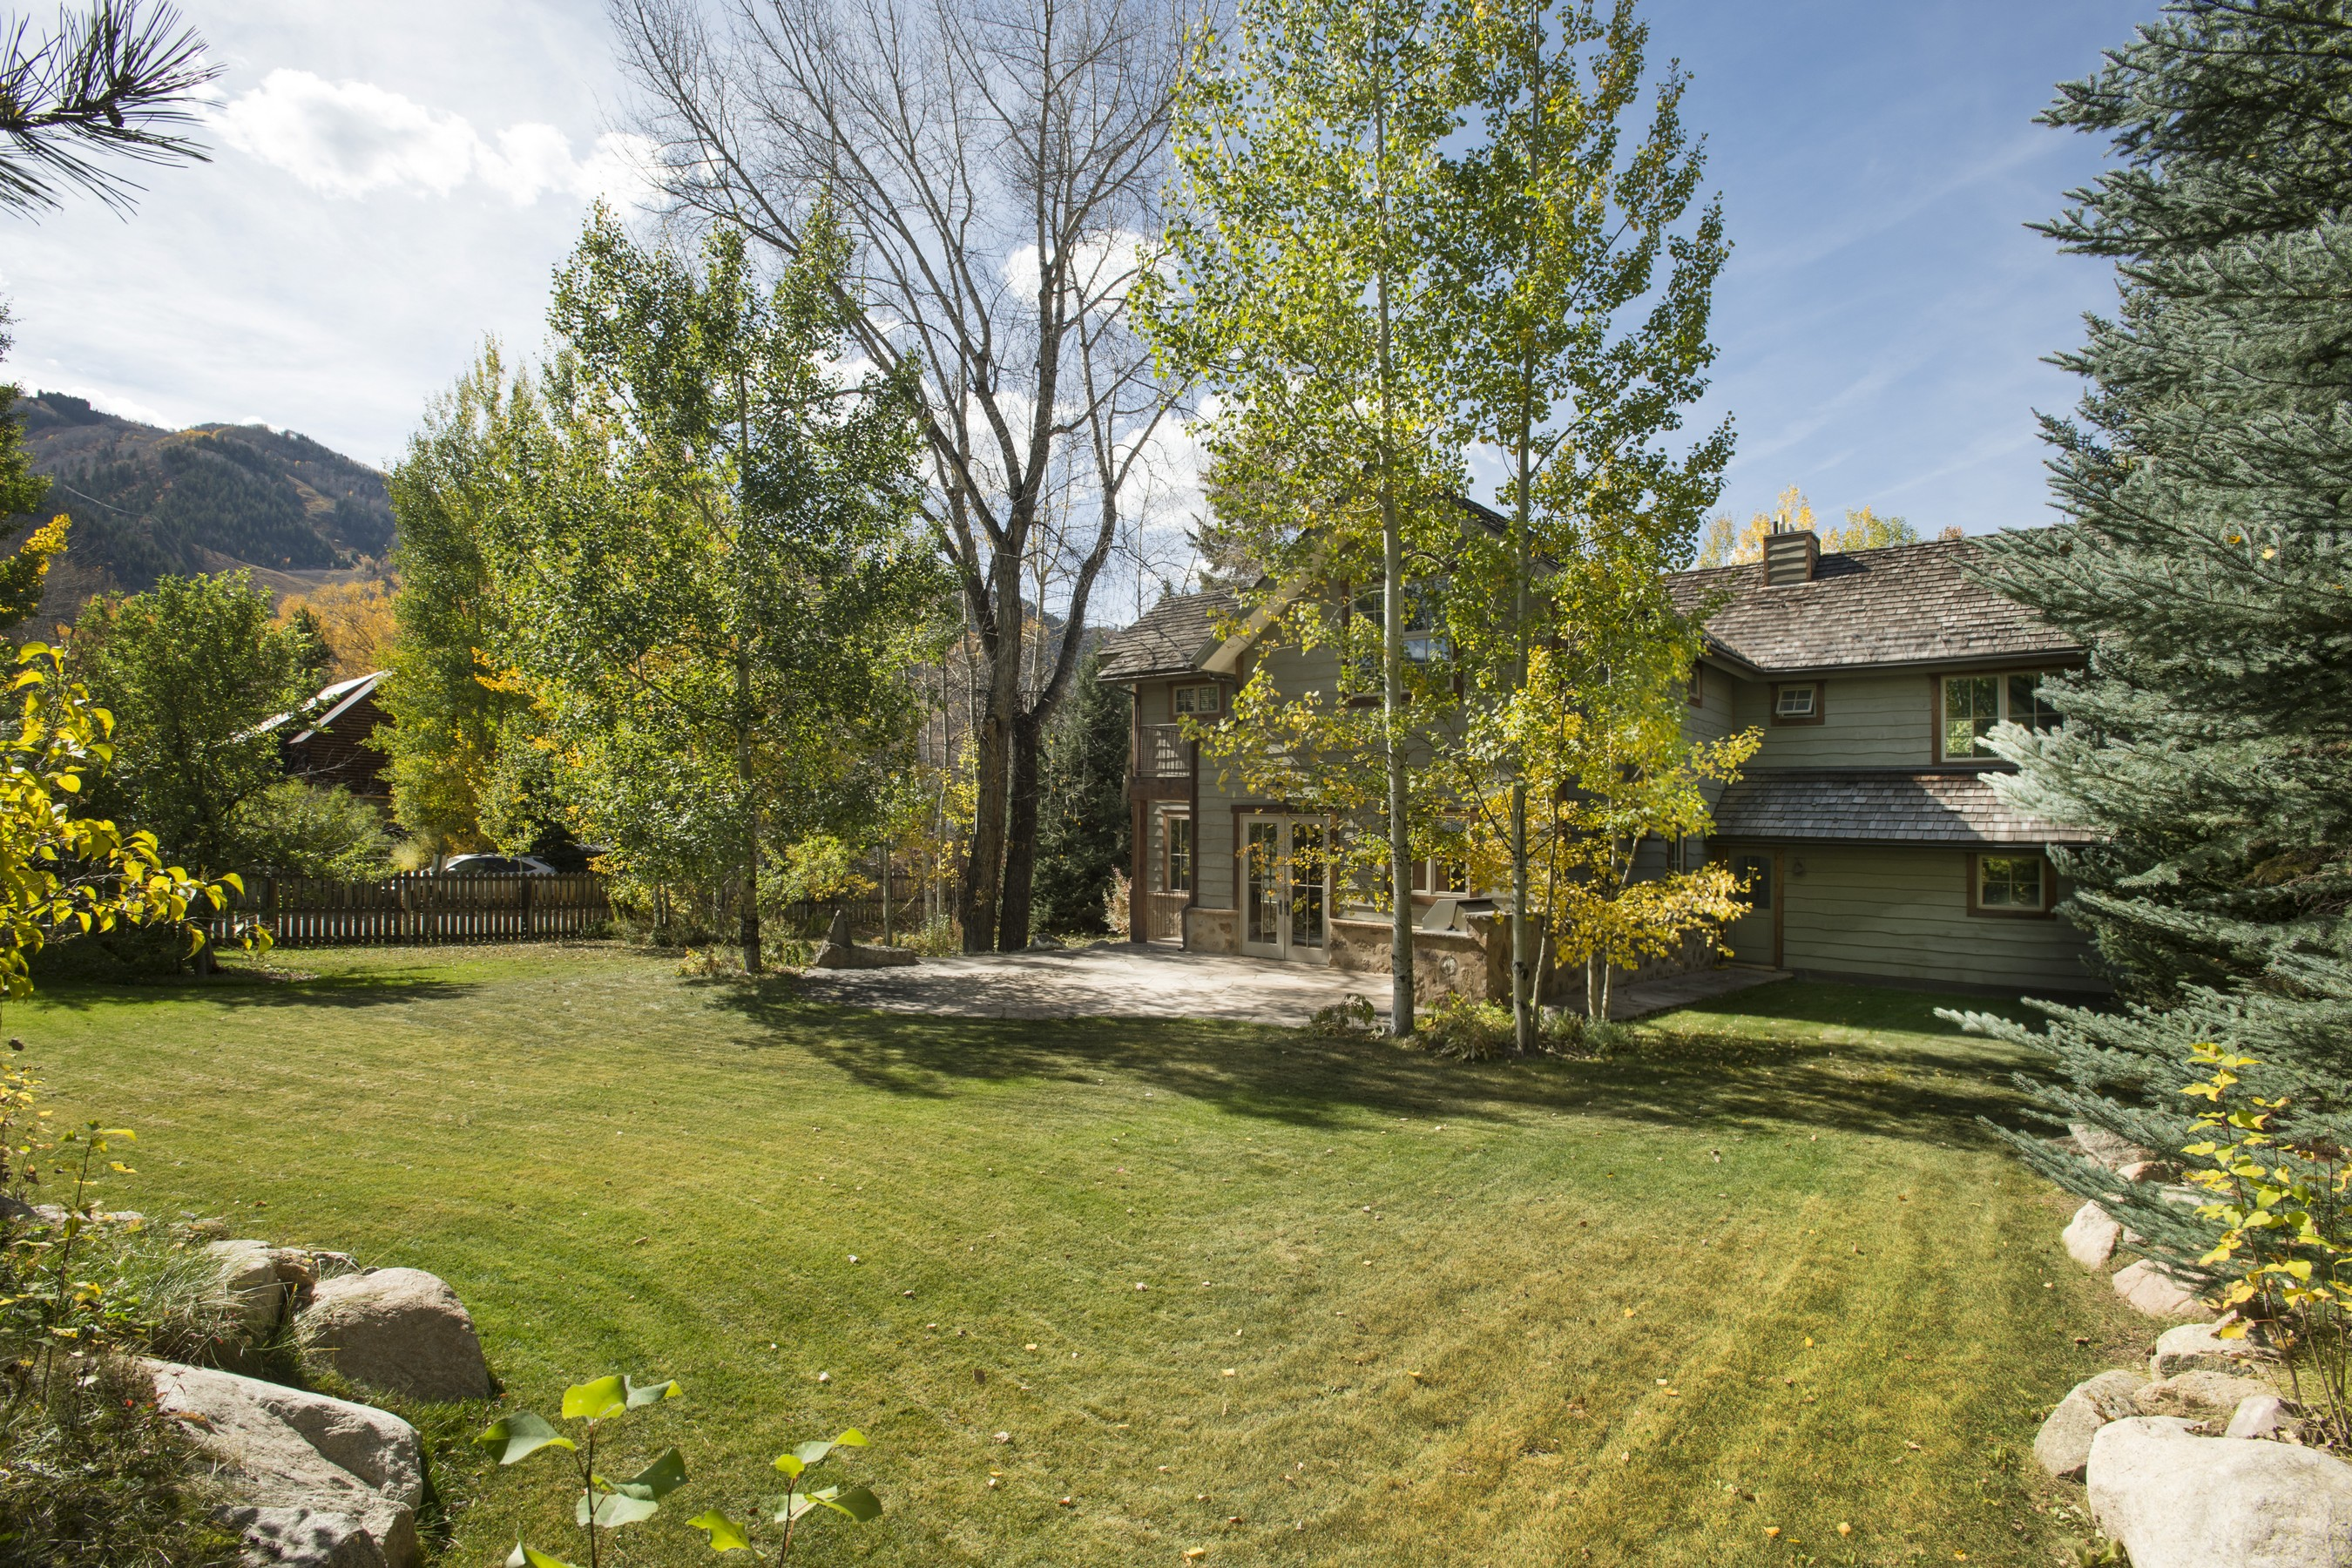 Single Family Home for Sale at Downtown Delight 936 King Street Central Core, Aspen, Colorado, 81611 United States